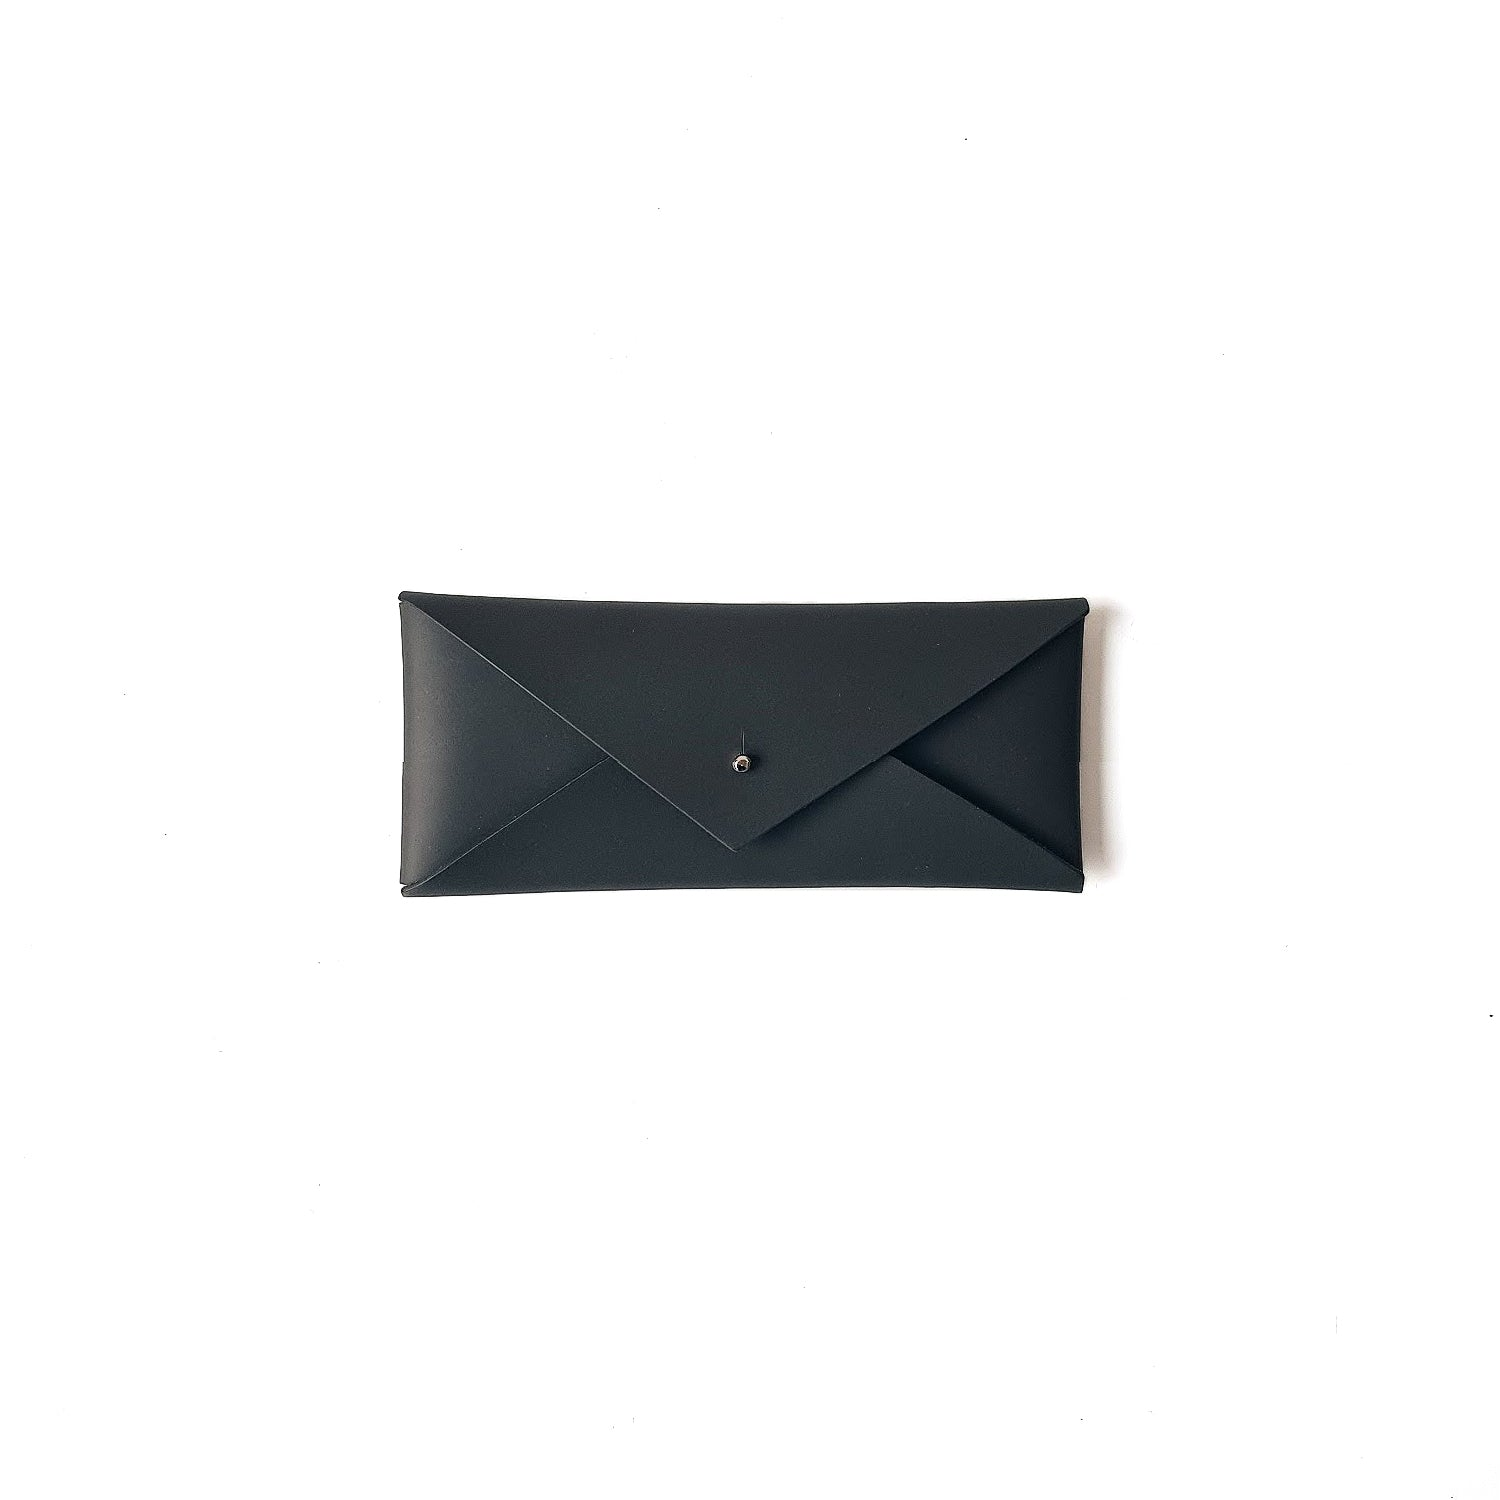 Long Envelope in Slate